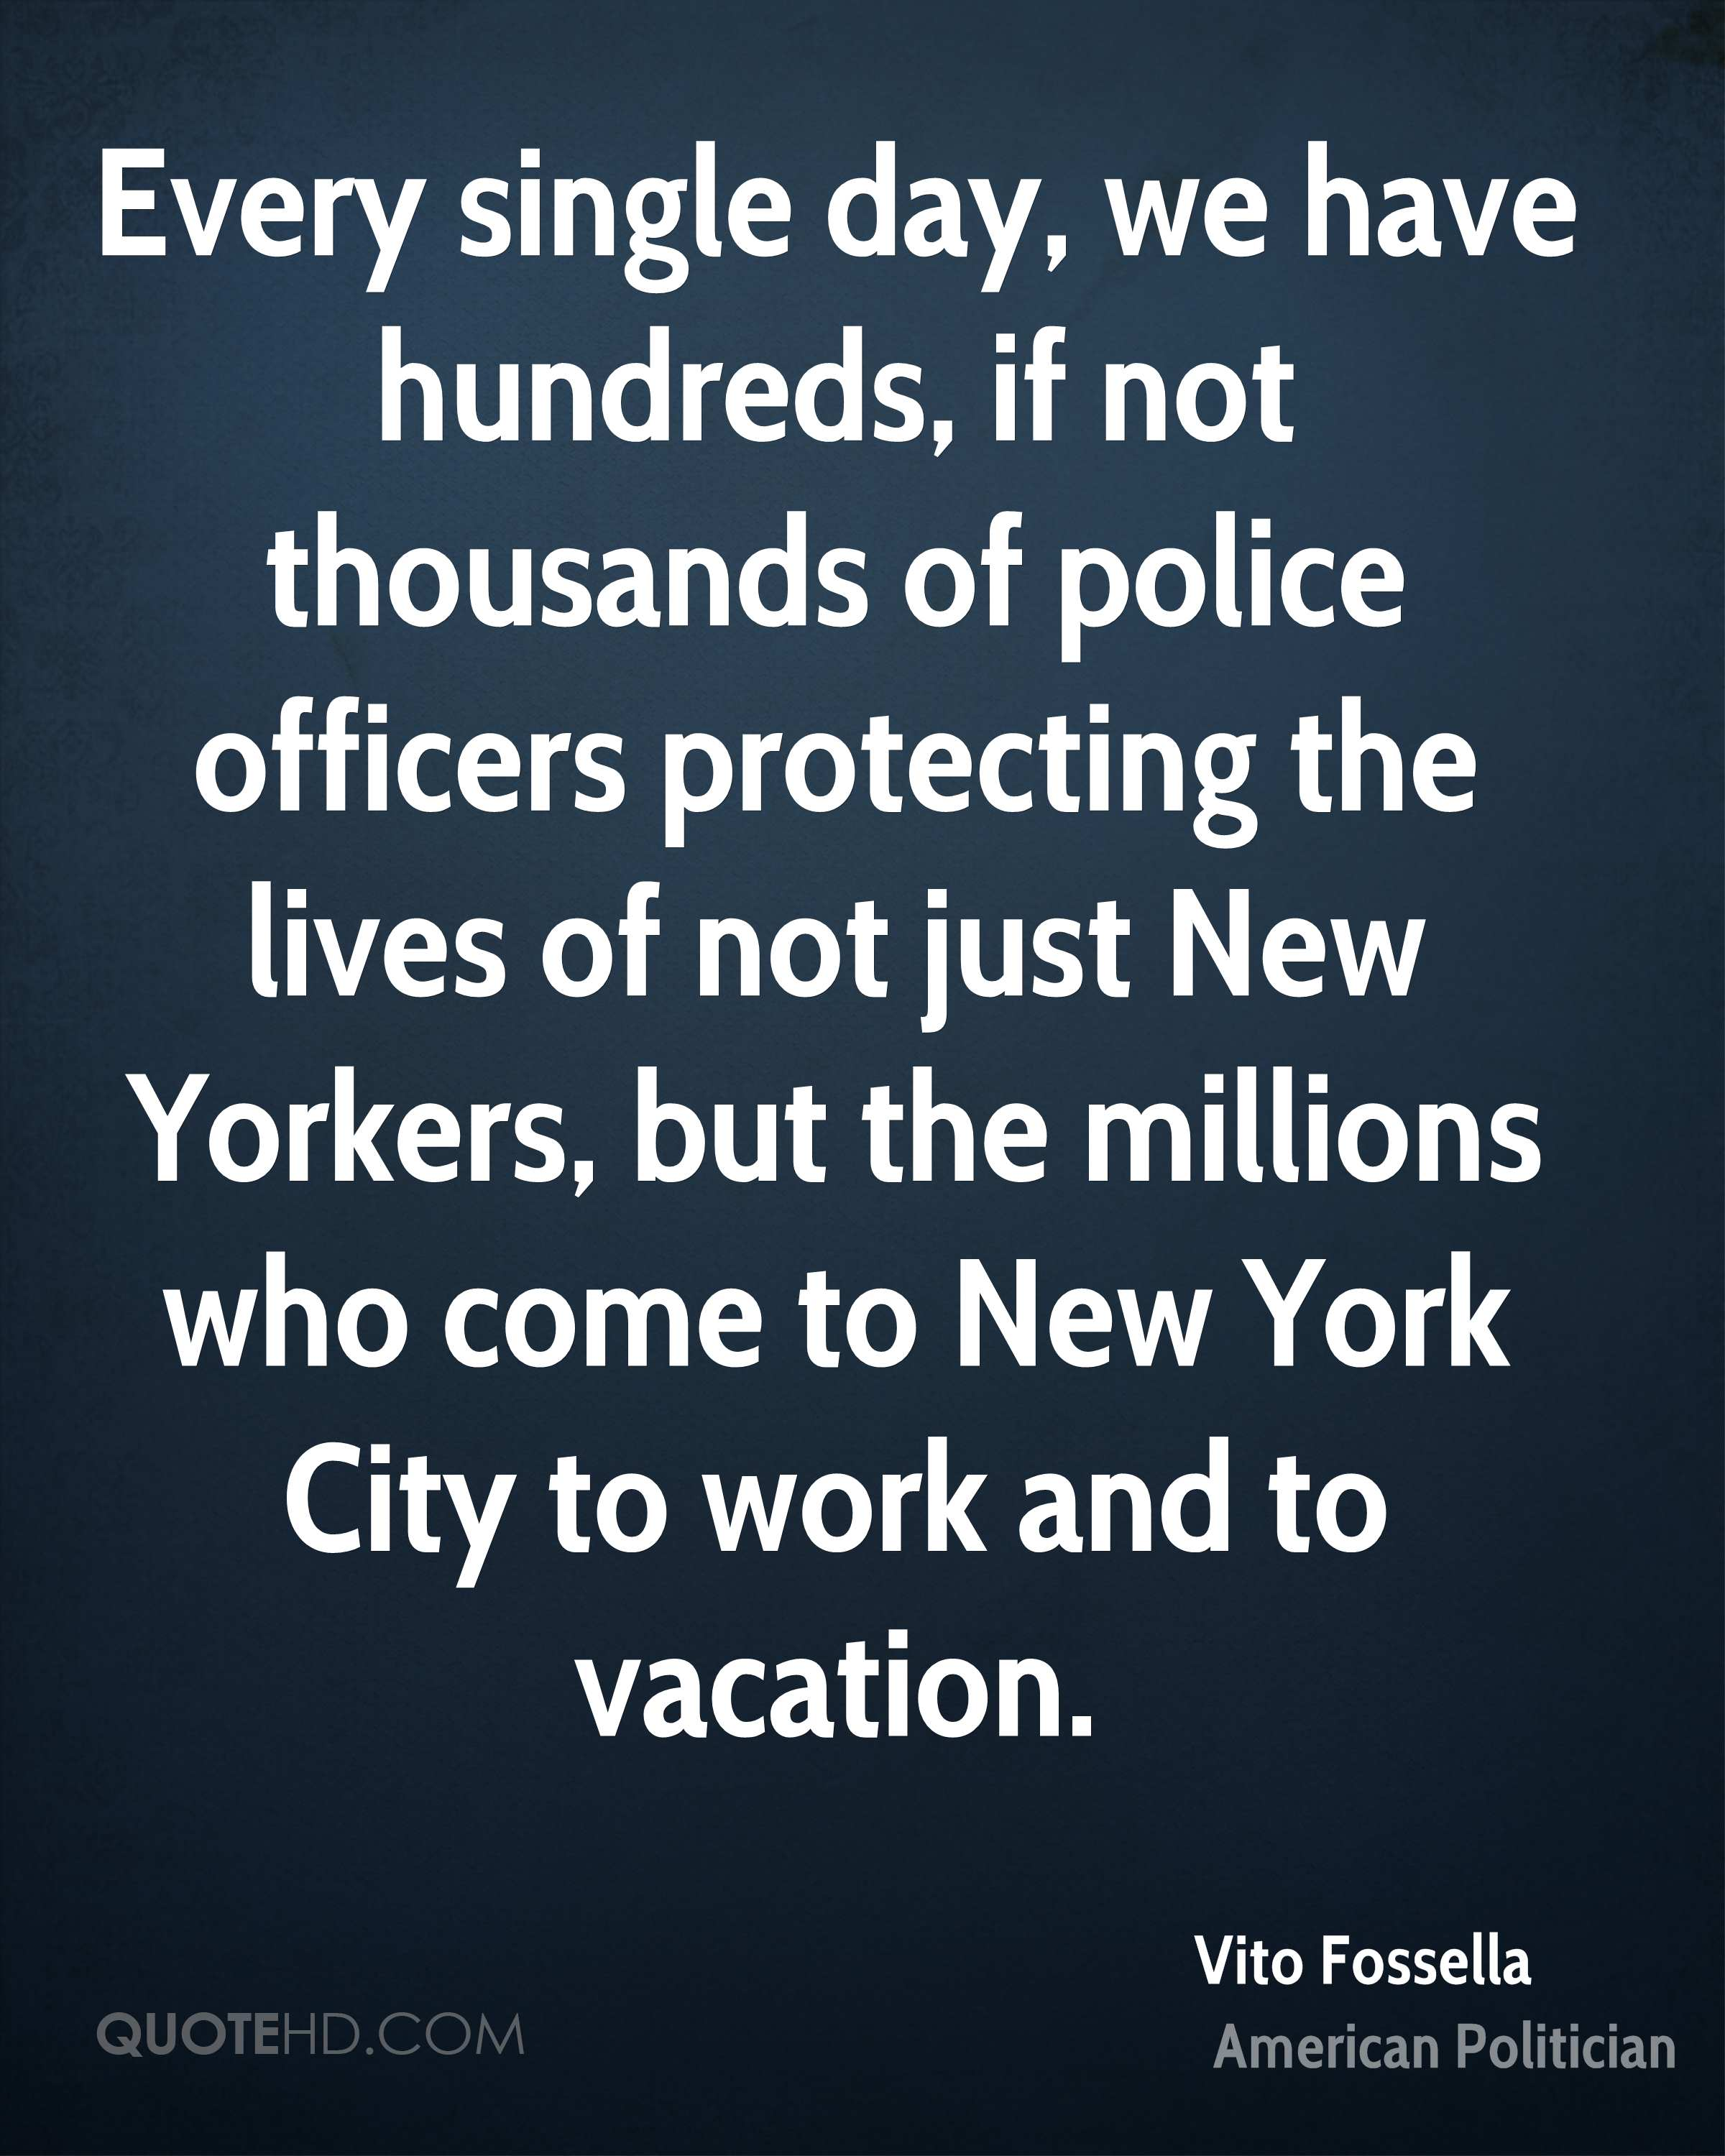 Every single day, we have hundreds, if not thousands of police officers protecting the lives of not just New Yorkers, but the millions who come to New York City to work and to vacation.